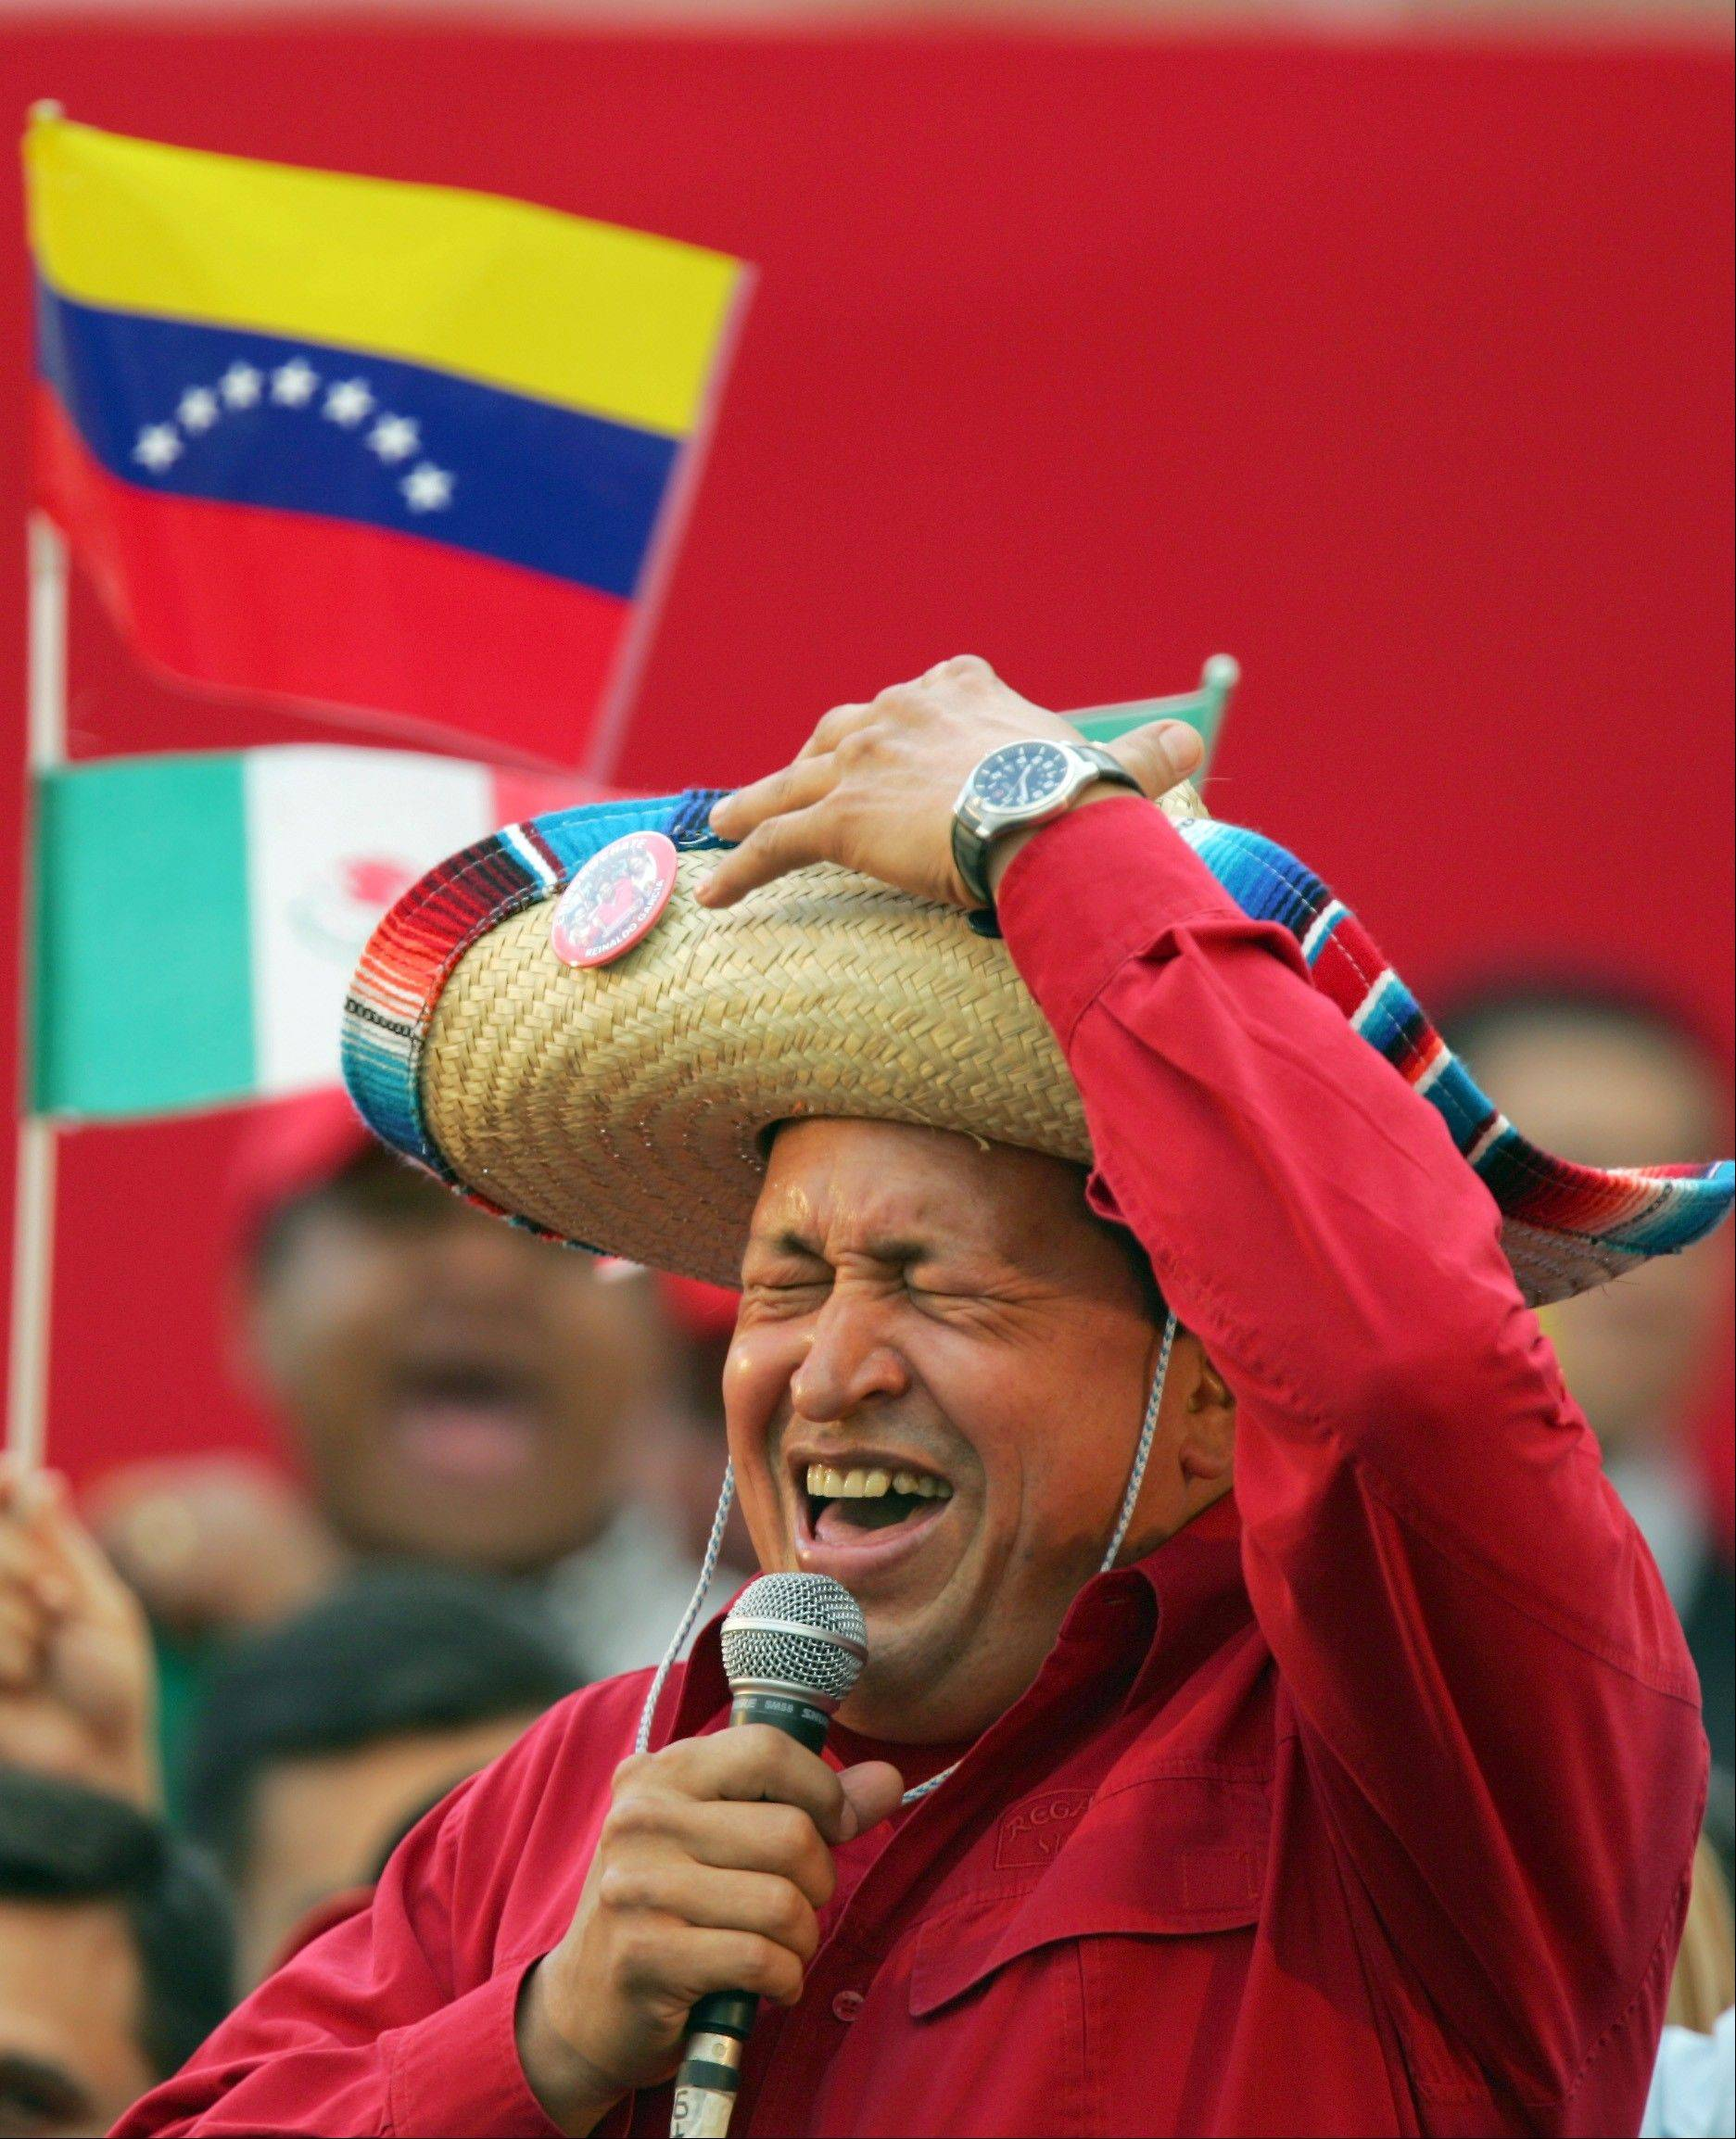 In this Nov. 19, 2005 file photo, Venezuela's President Hugo Chavez wears a Mexican sombrero as he sings a Mexican ranchera song at a rally in Caracas, Venezuela.